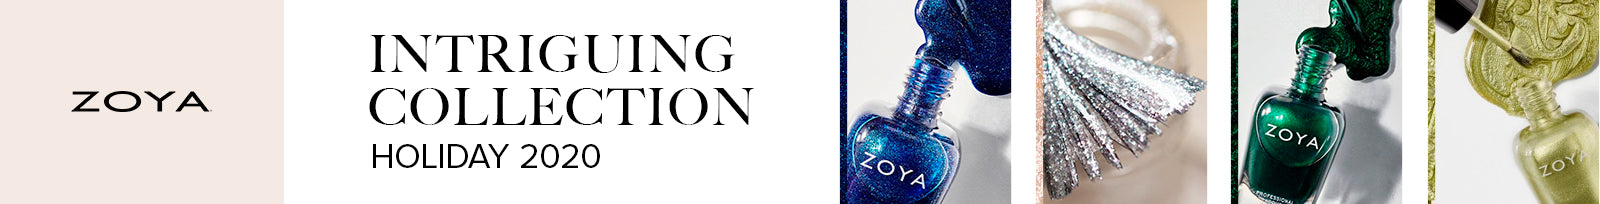 Zoya Intriguing Holiday 2020 Collection